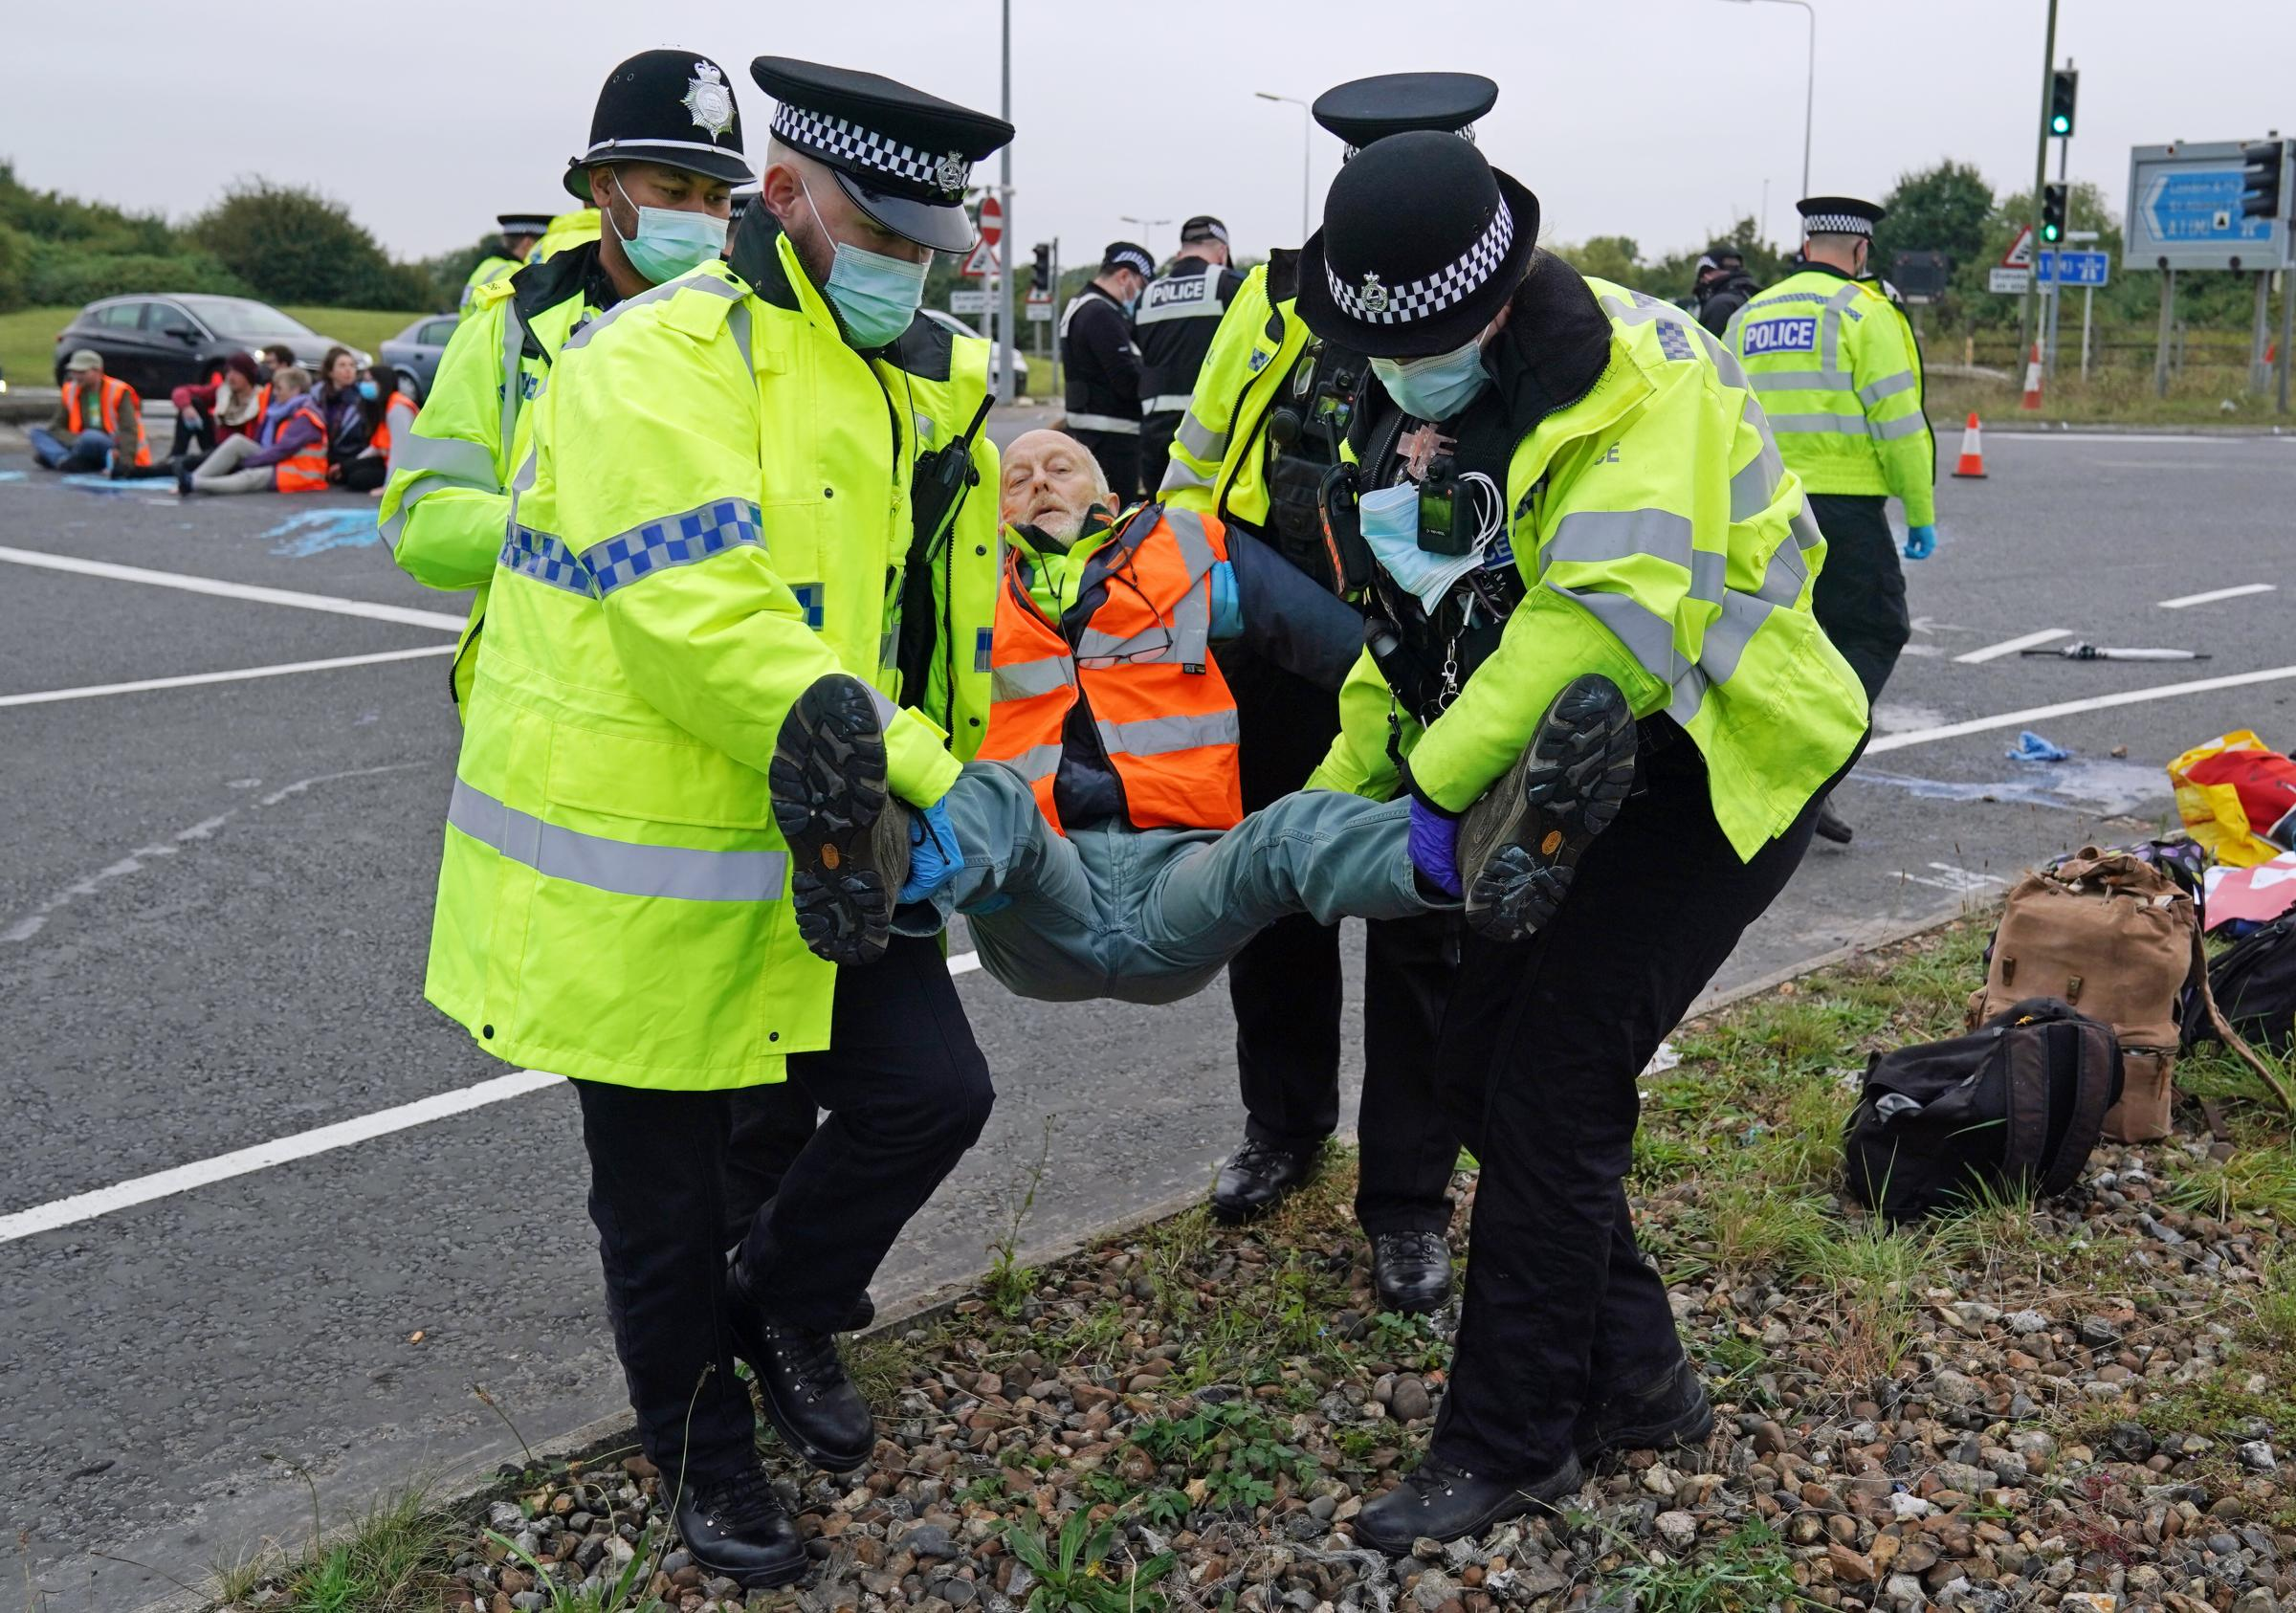 Environmental protesters block traffic on M25 again